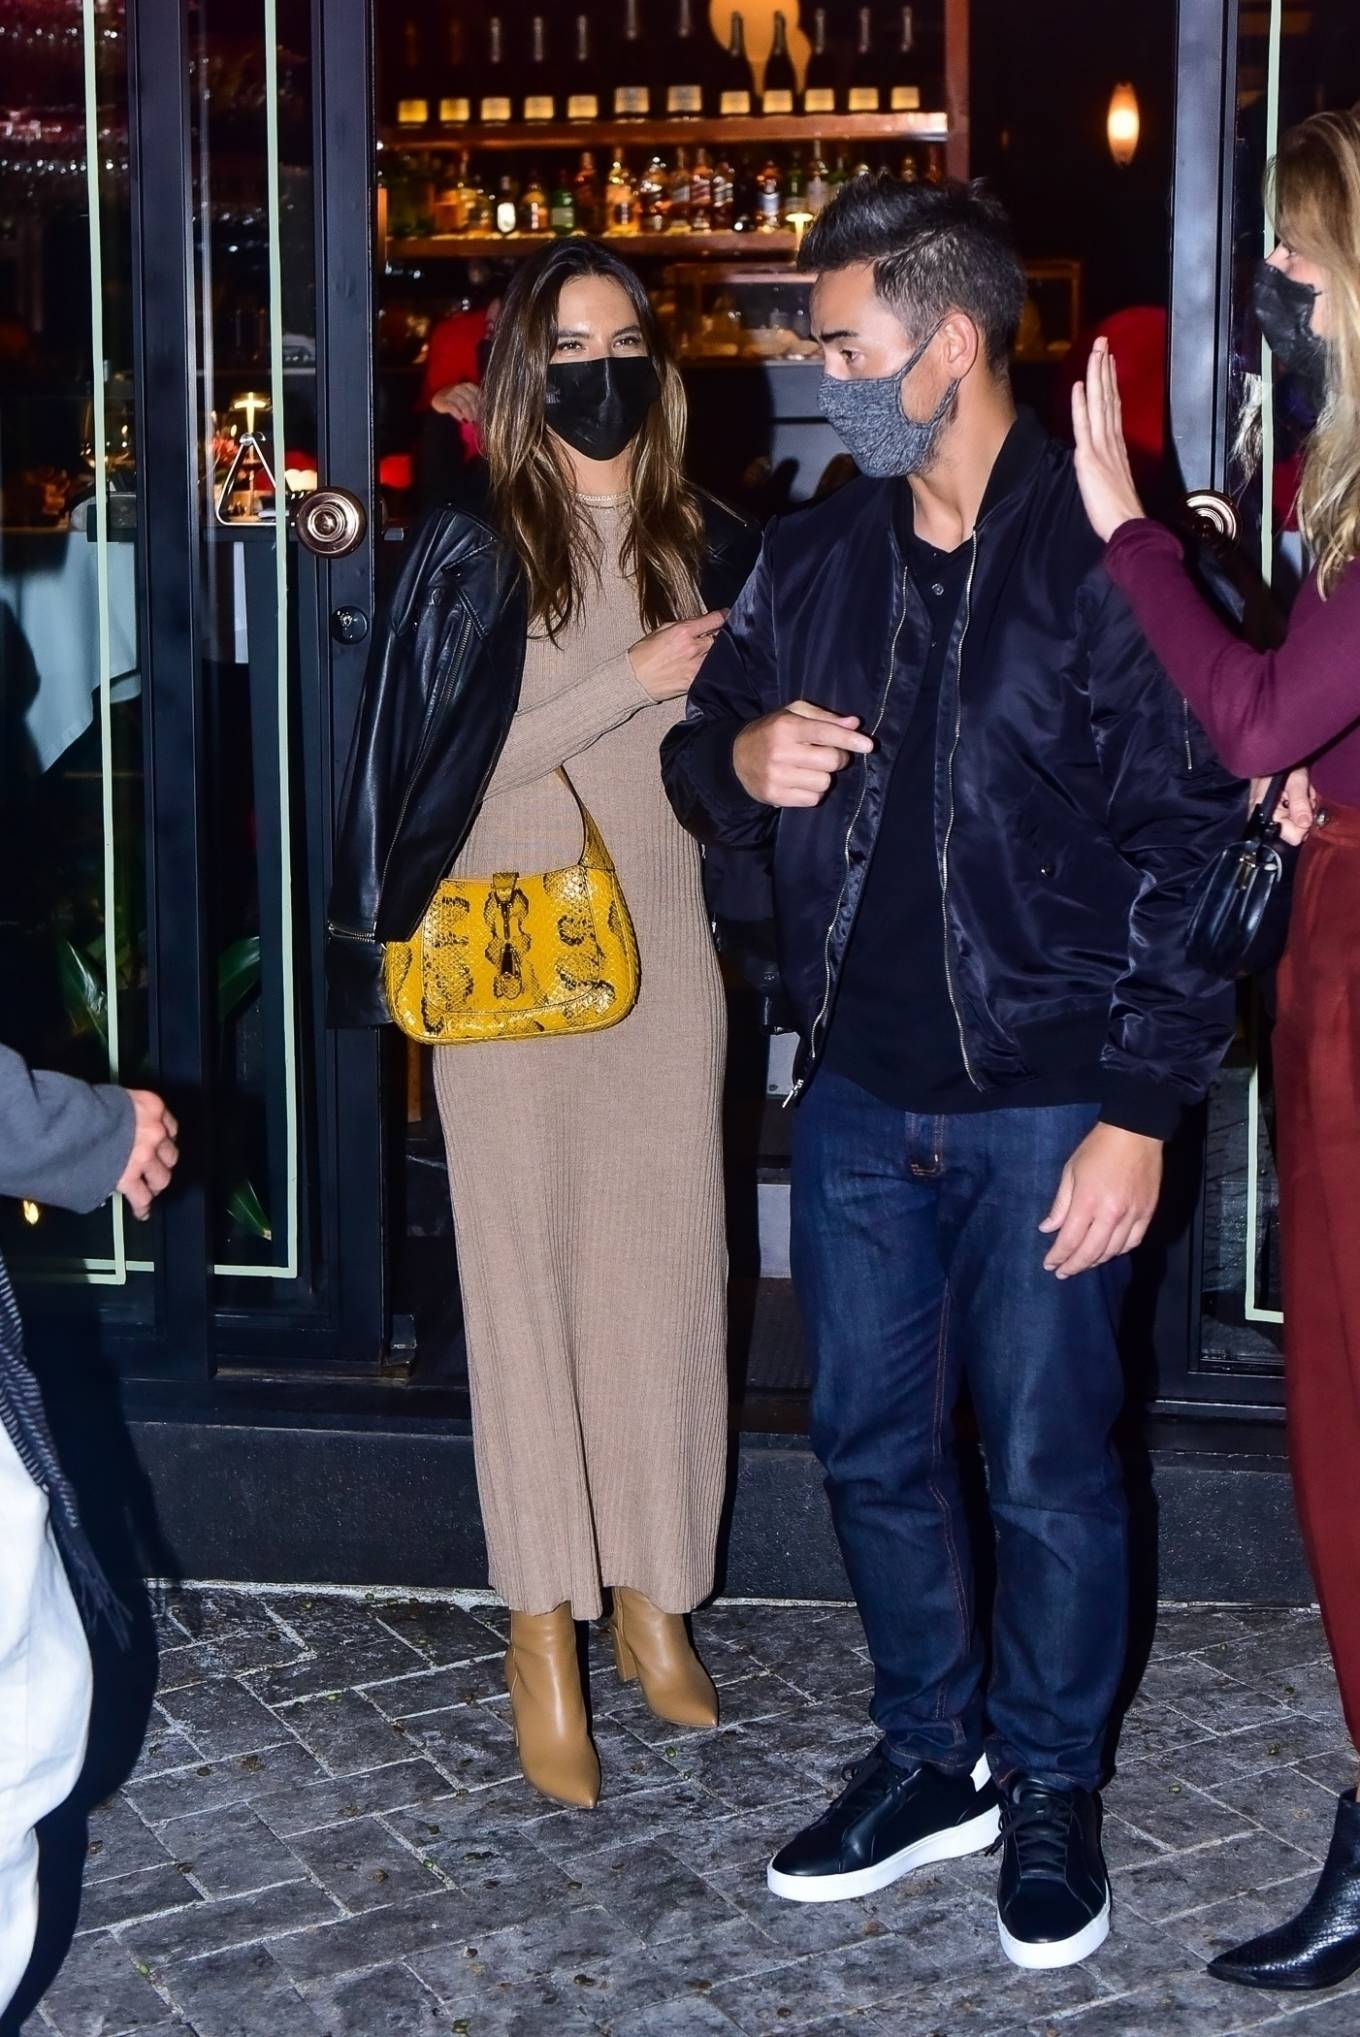 Alessandra Ambrosio wearing pointed mustard thigh high boots with cuban heel